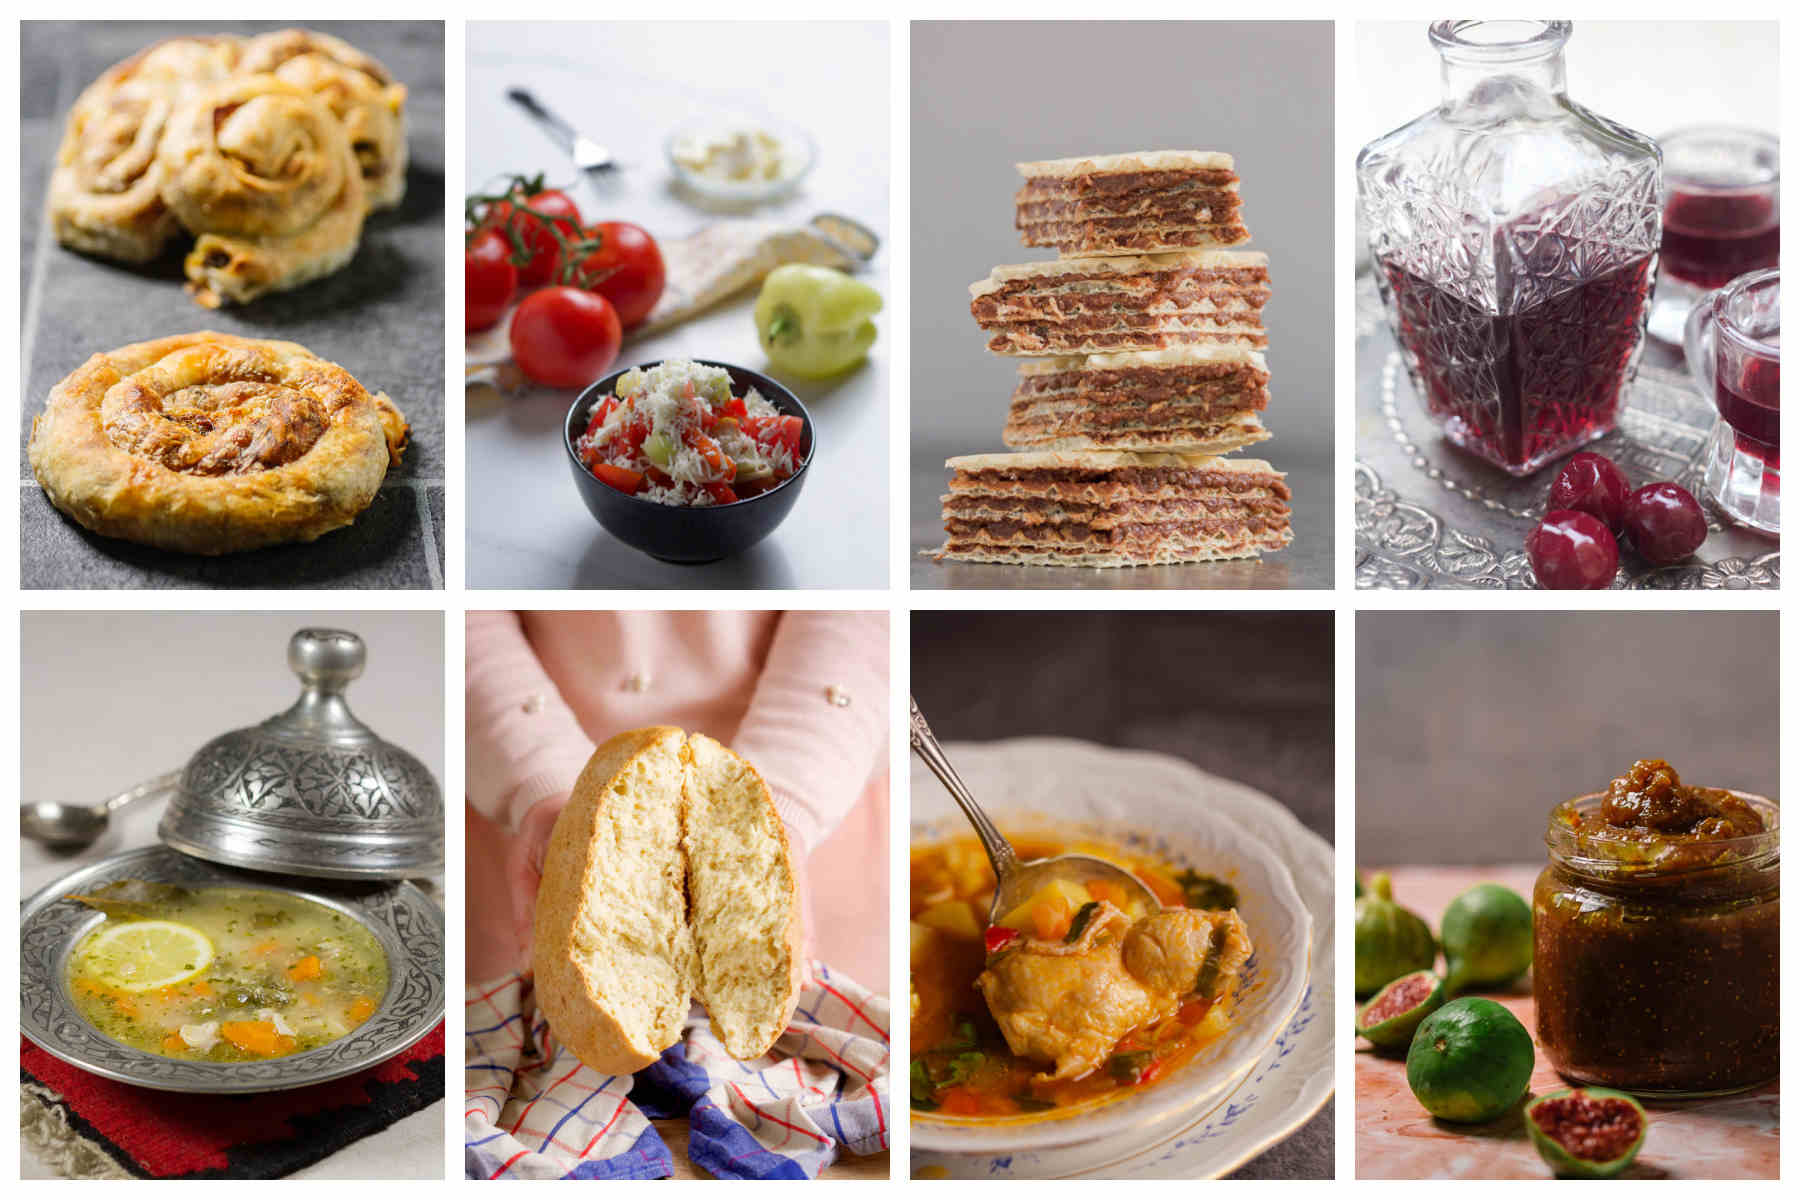 Two rows of four photos depicting different foods.